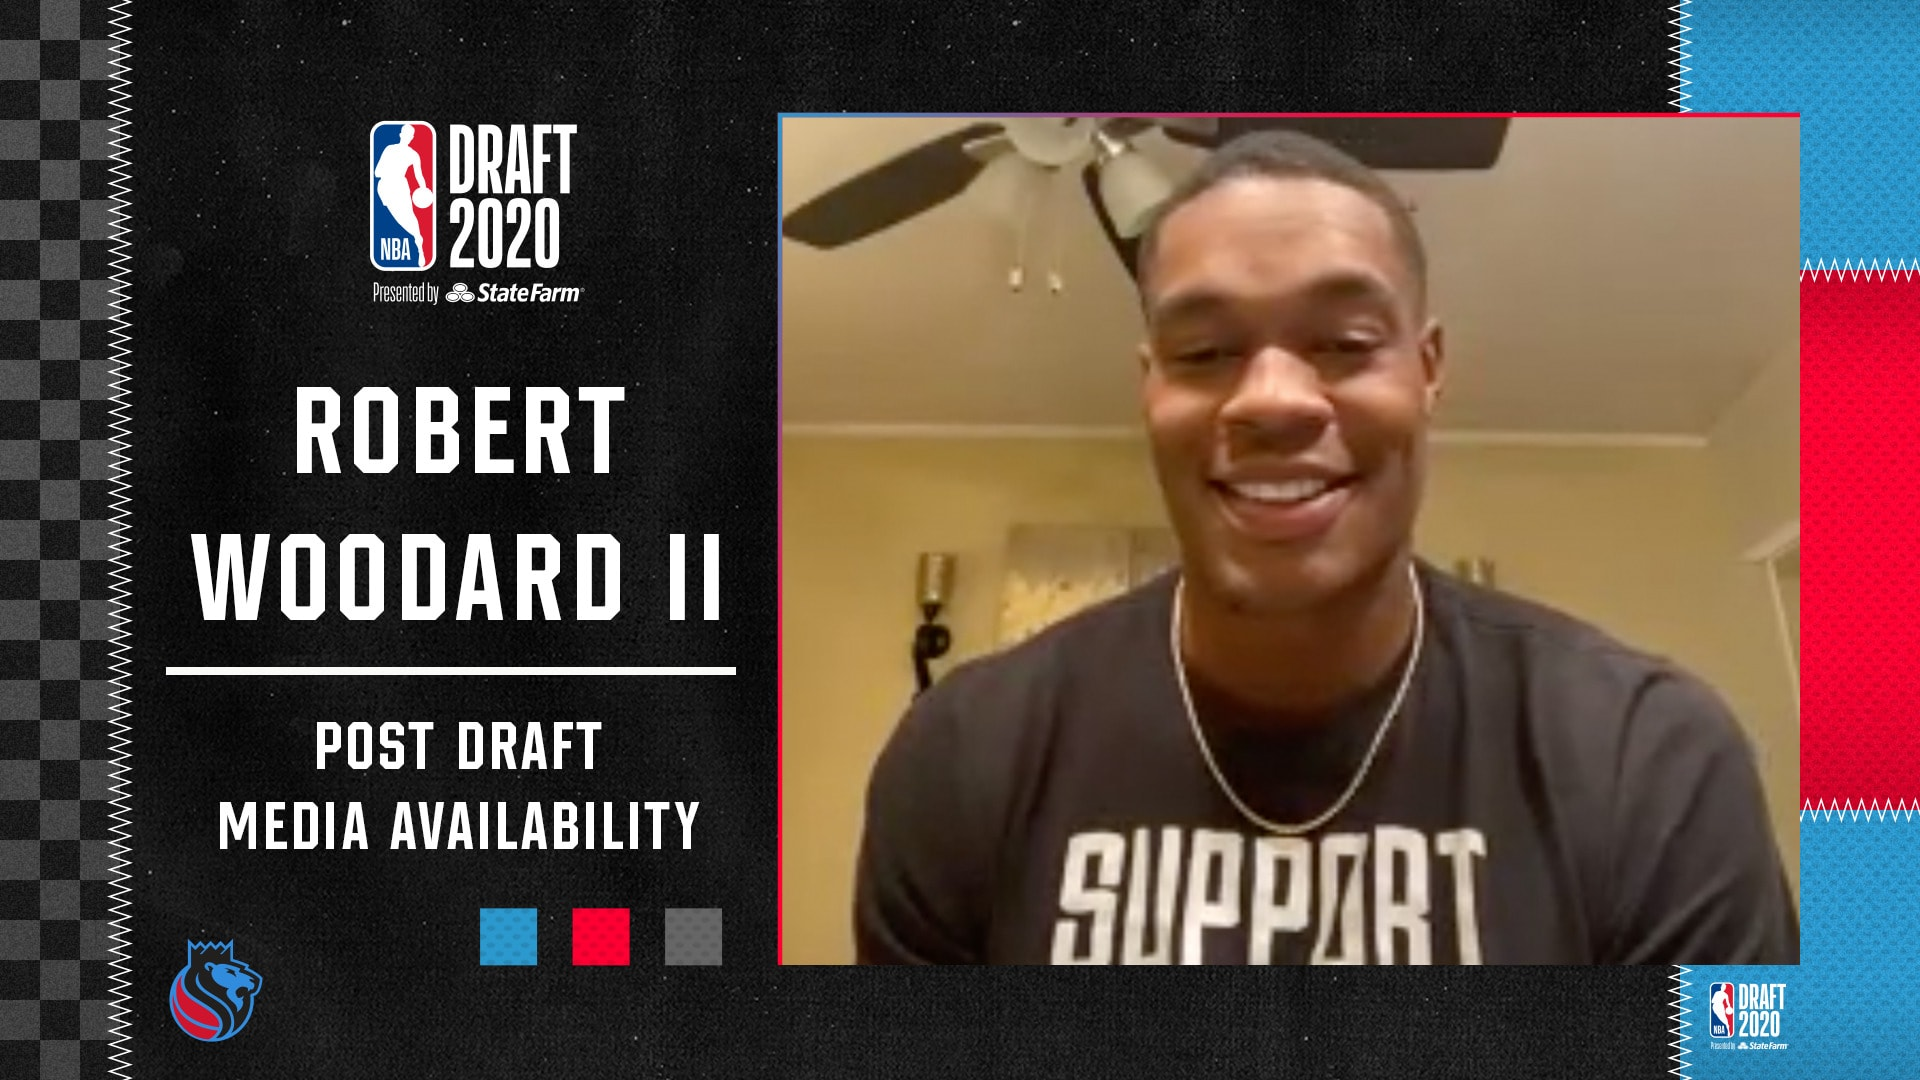 2020 Post Draft Media Availability | Robert Woodard II